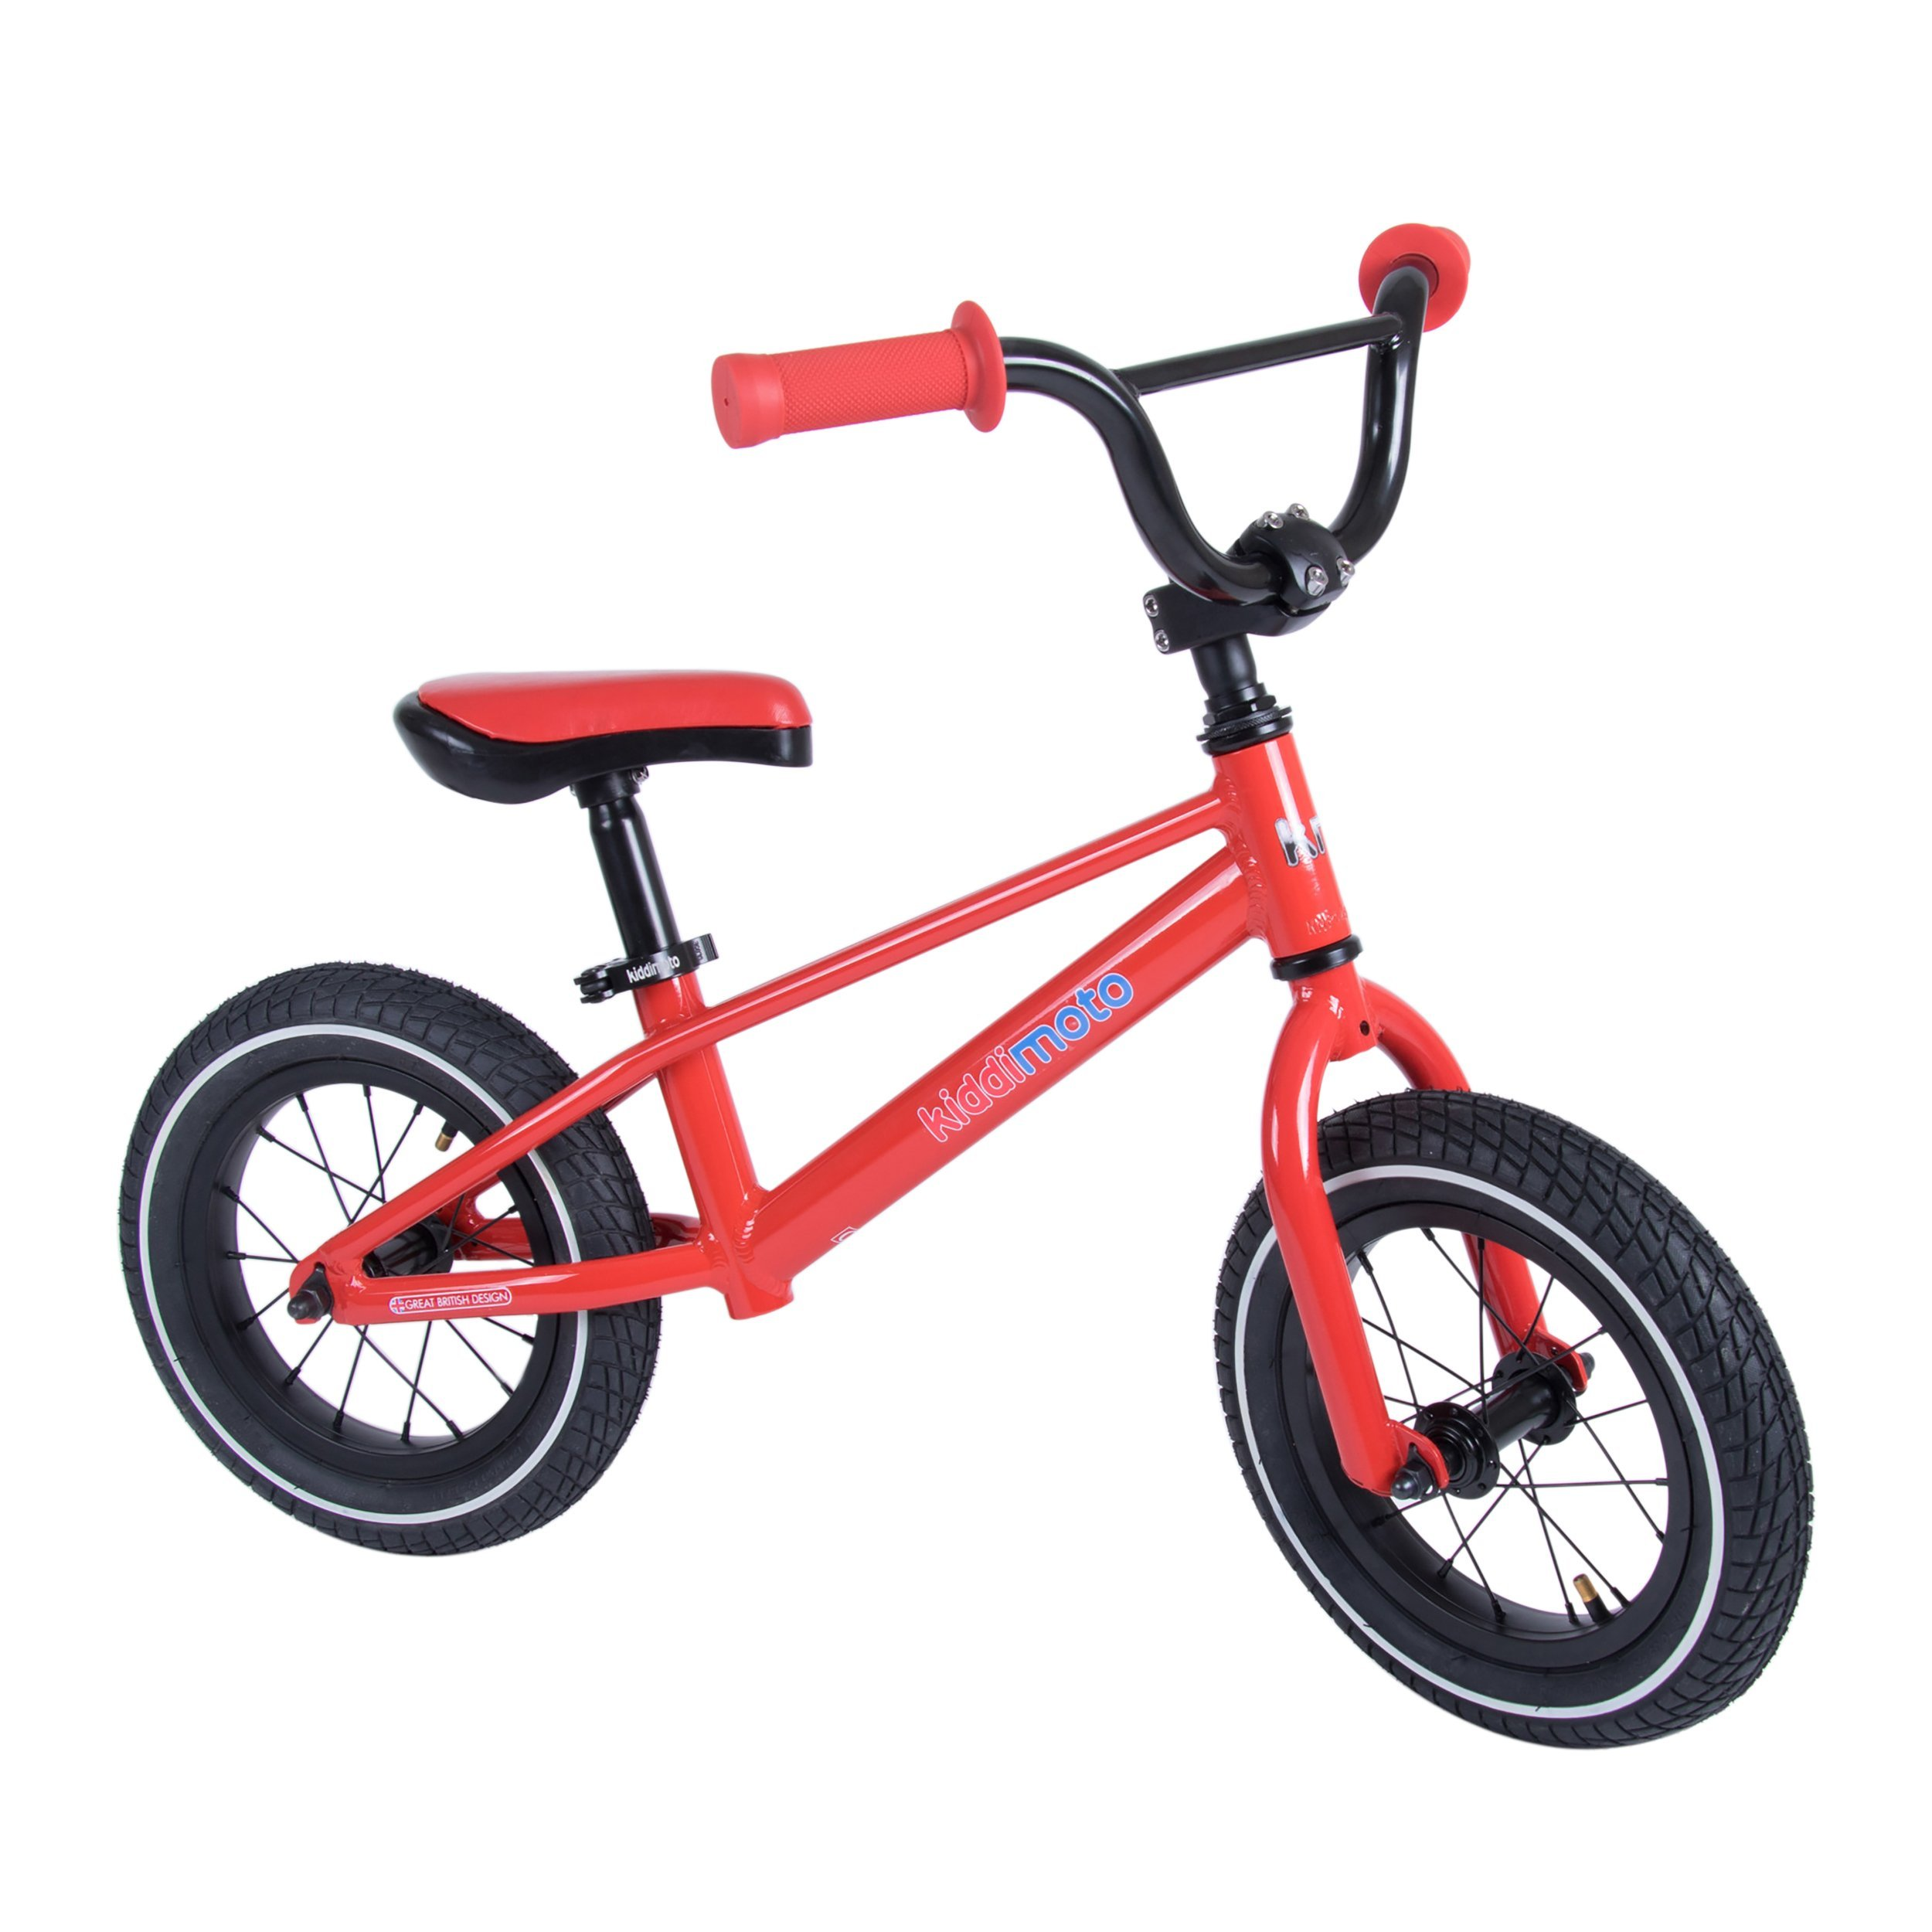 Kiddimoto BMX Running/Balance Bike, Red